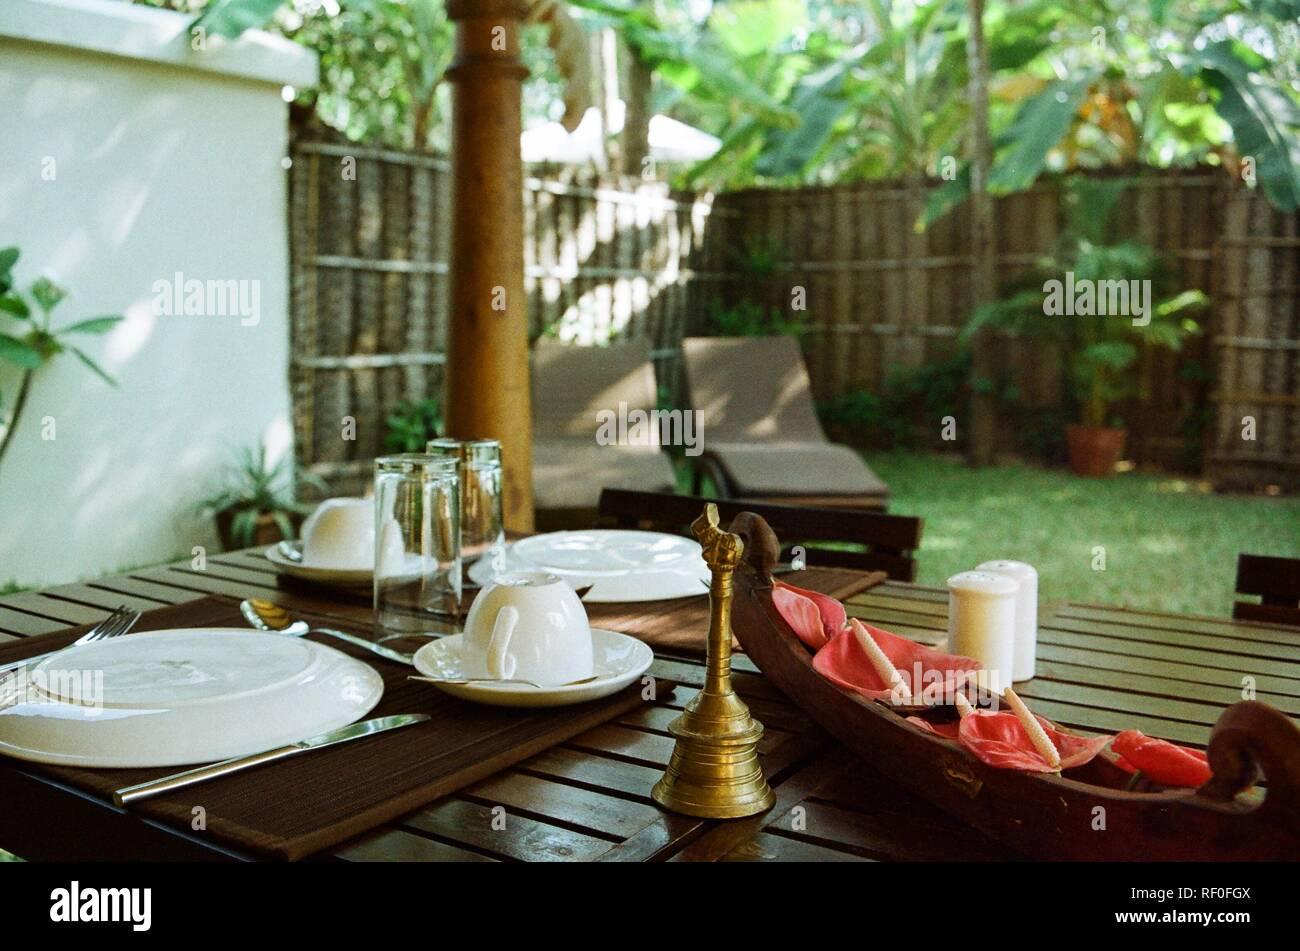 A freshly laid table with flowers and a brass bell in the private garden of a converted fisherman's house in Alappuzha, Kerala, India. - Stock Image